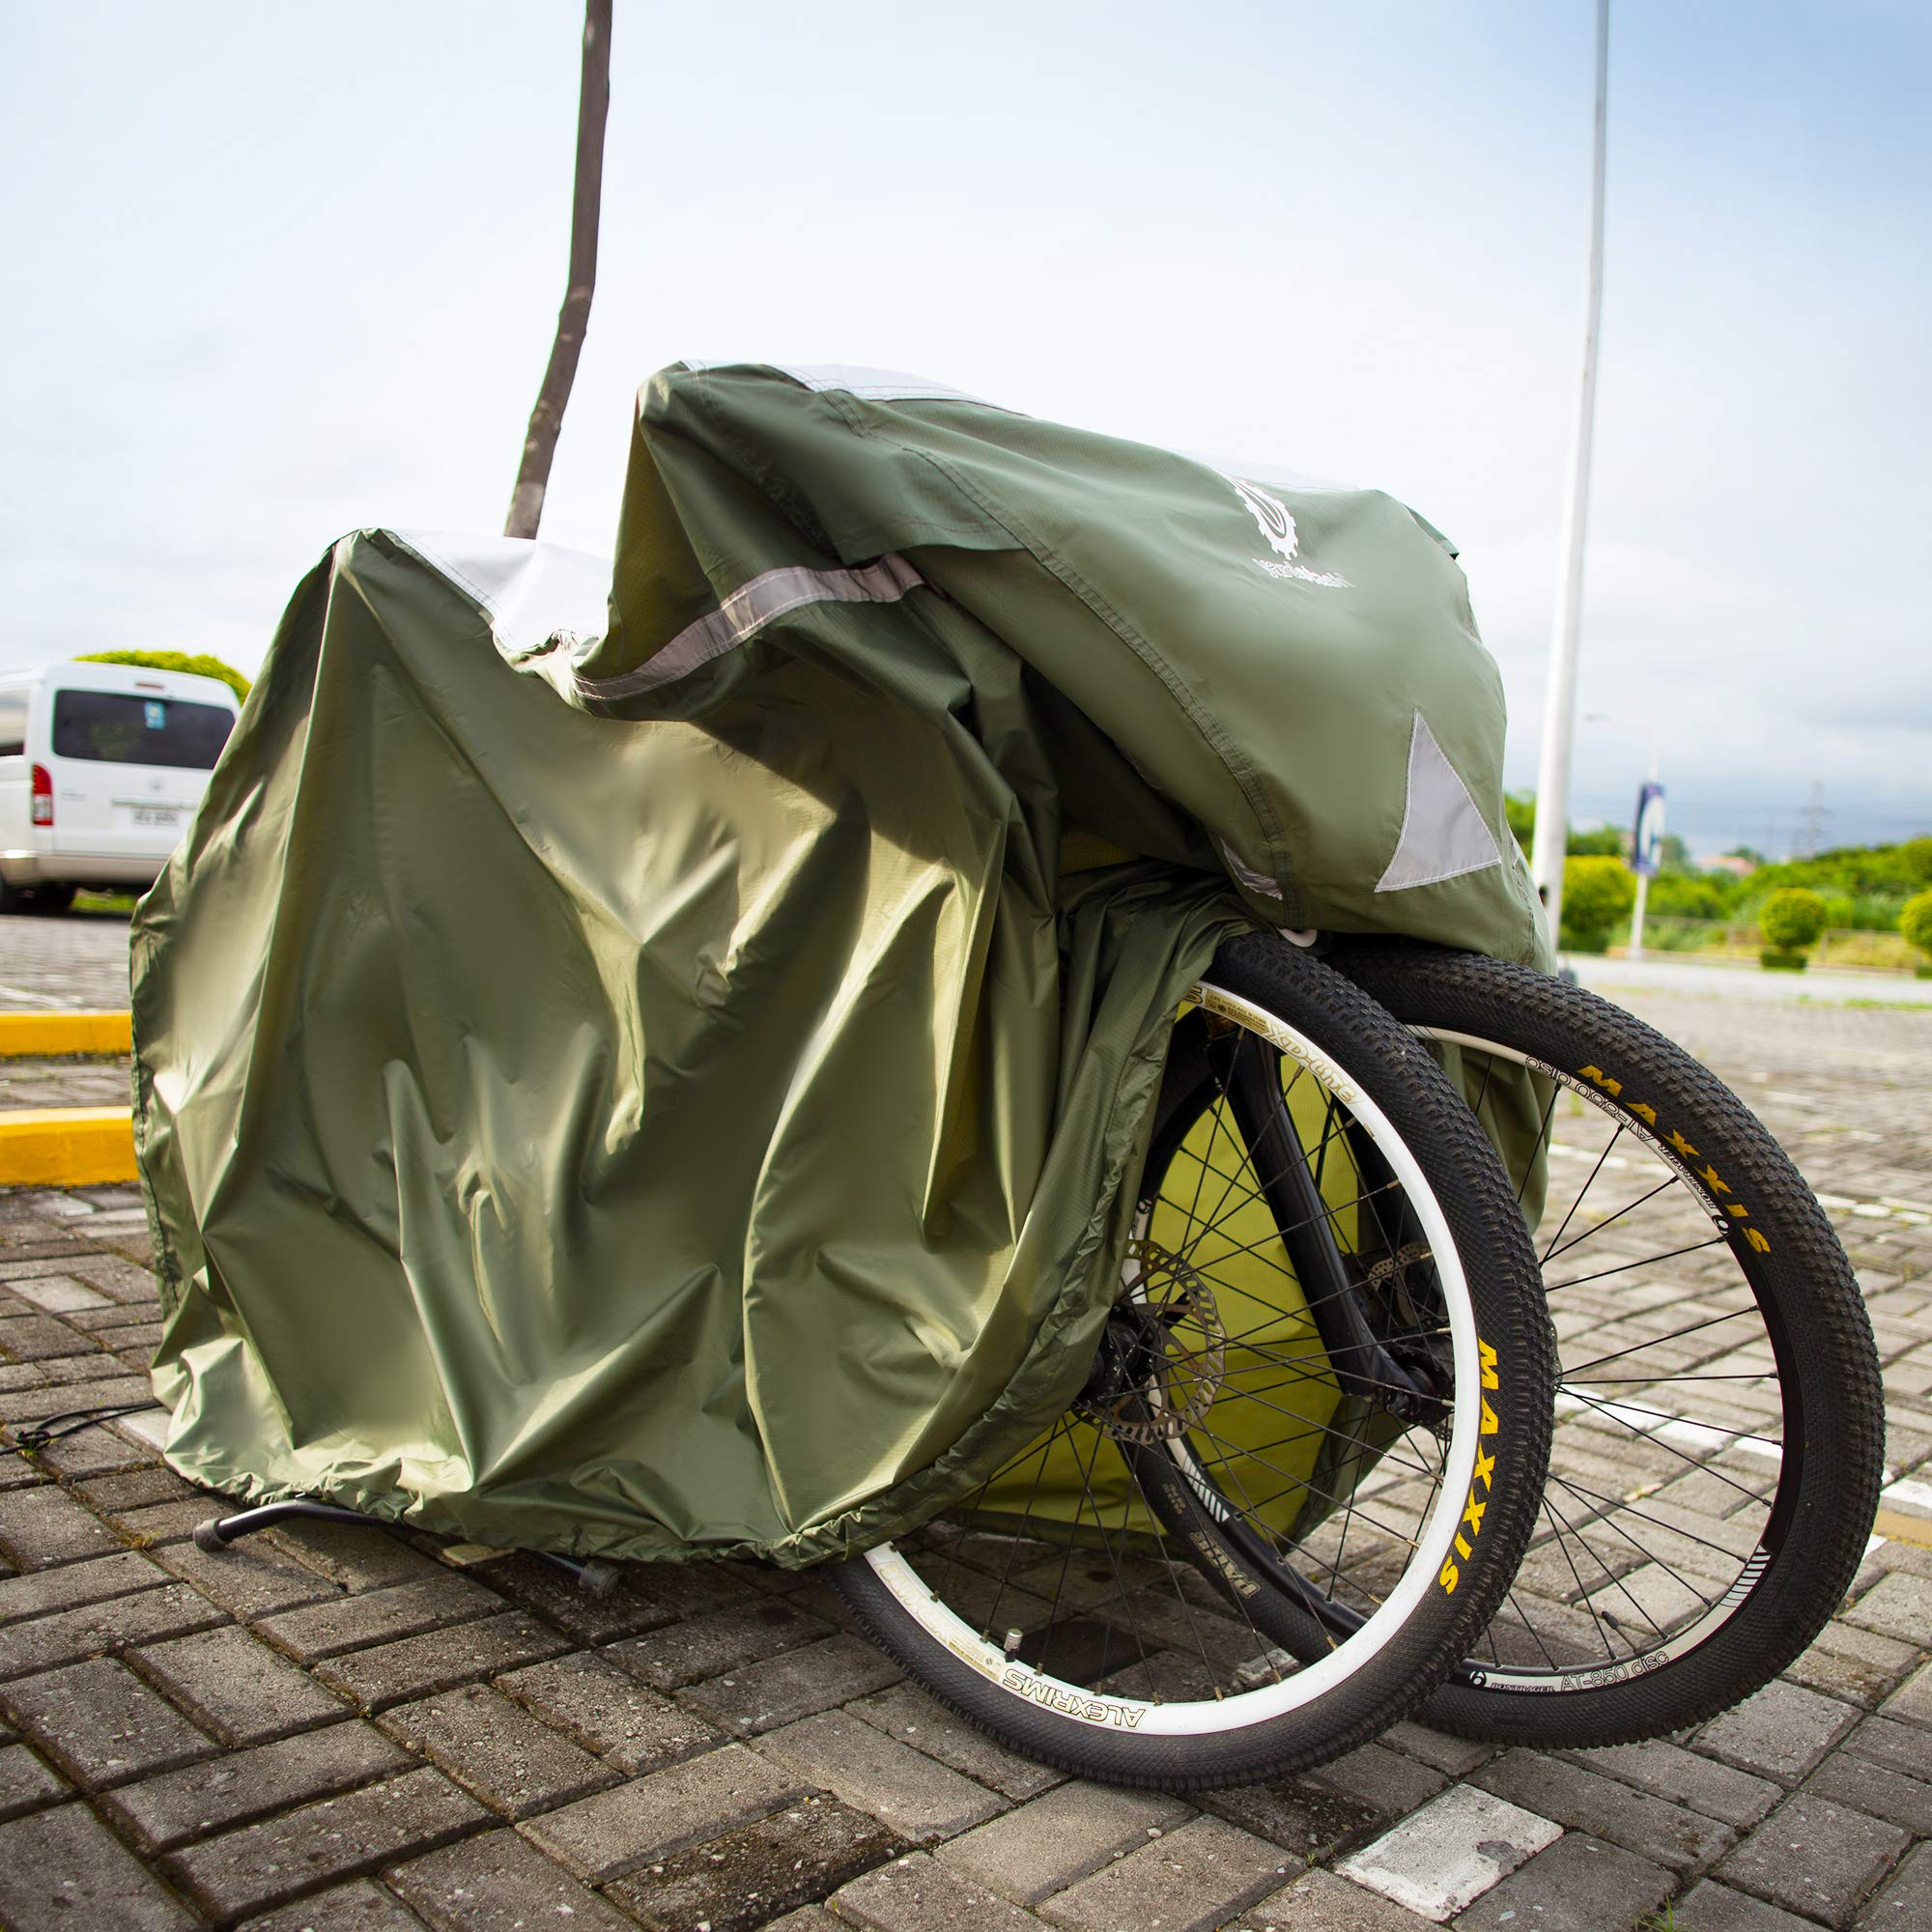 YardStash Bicycle Cover XL: Extra Large Size for Beach Cruiser Cover, 29er Mountain Bike Cover, Electric Bike Cover, Multiple Kids' Bike Cover and Cover for Bikes with Baskets, Child Seats or Racks by YardStash (Image #4)